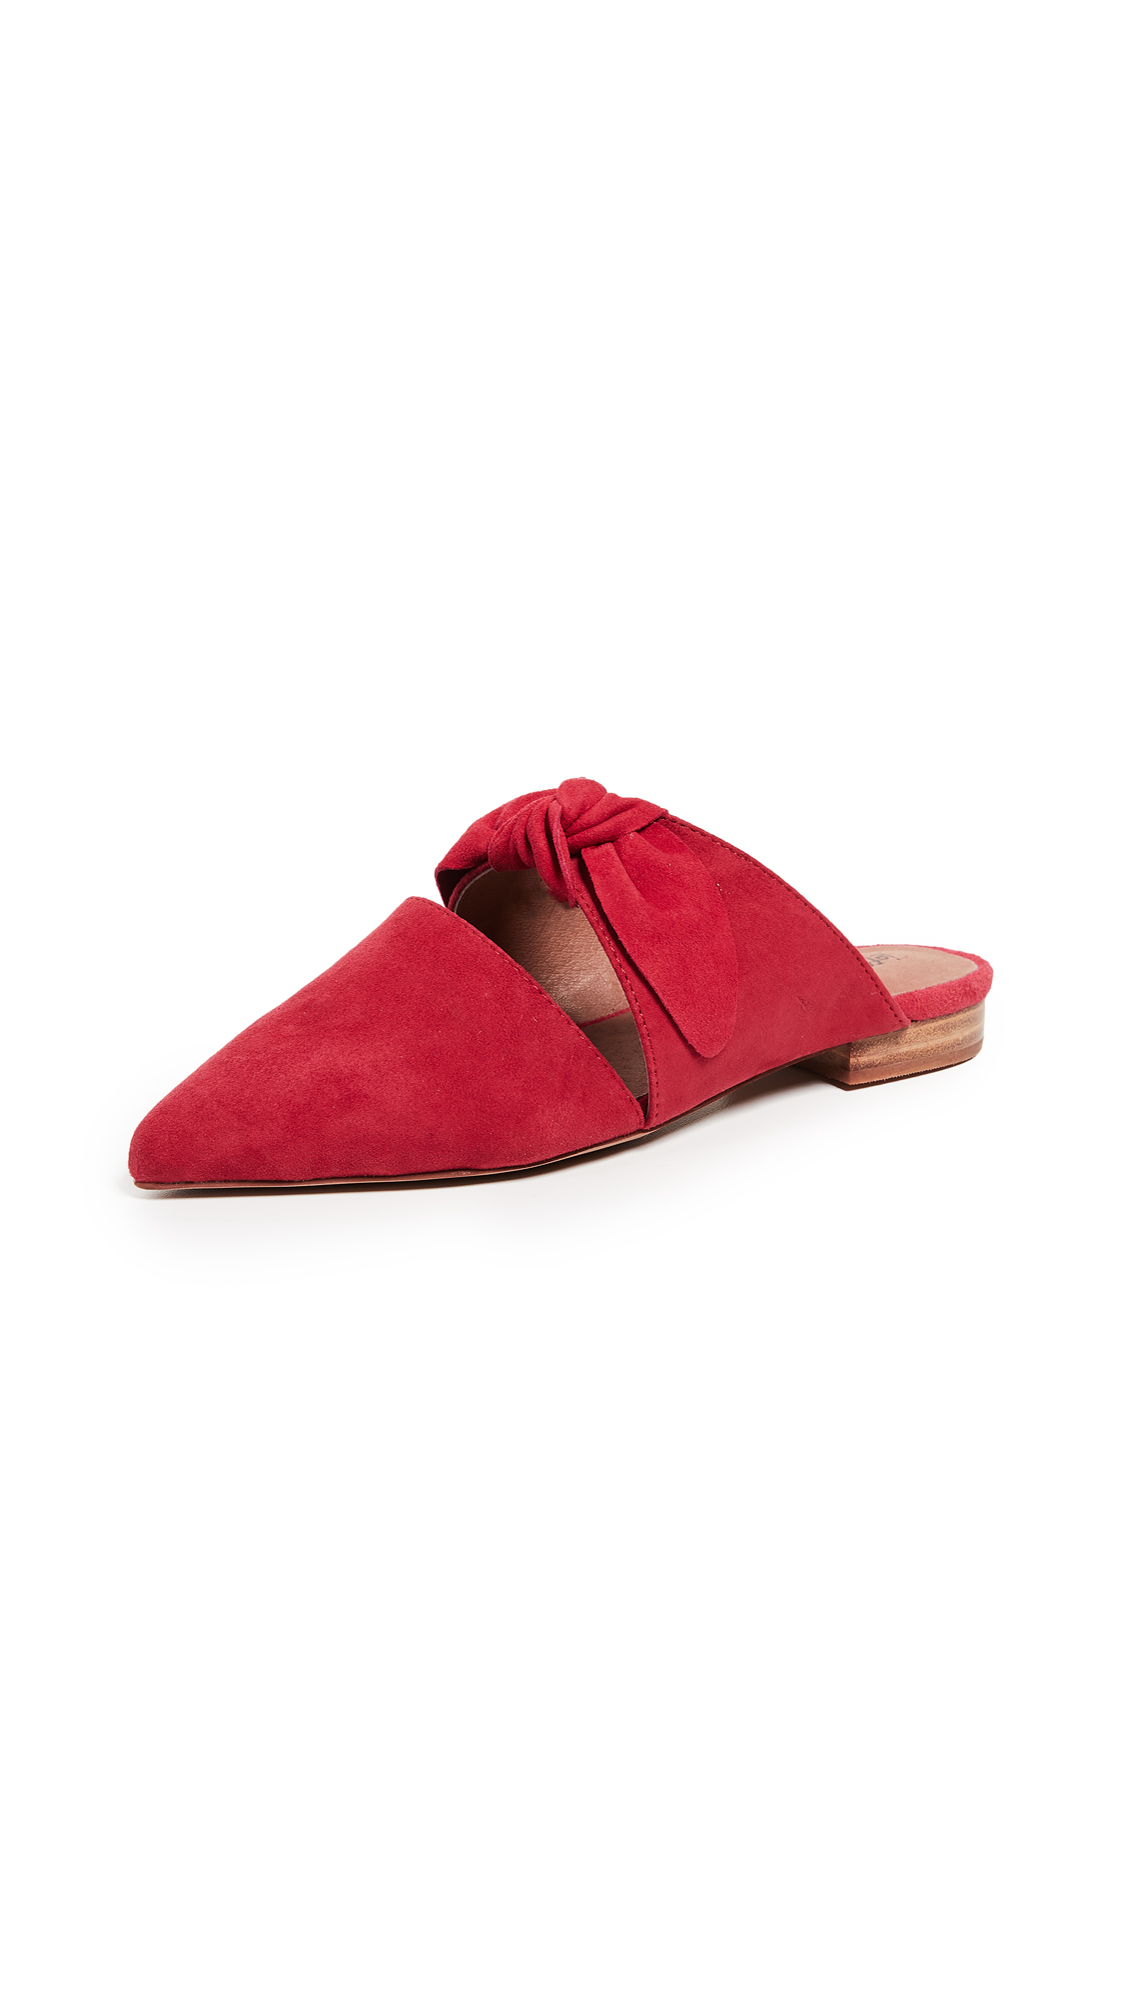 Jeffrey Campbell Charlin Point Toe Mules - Red